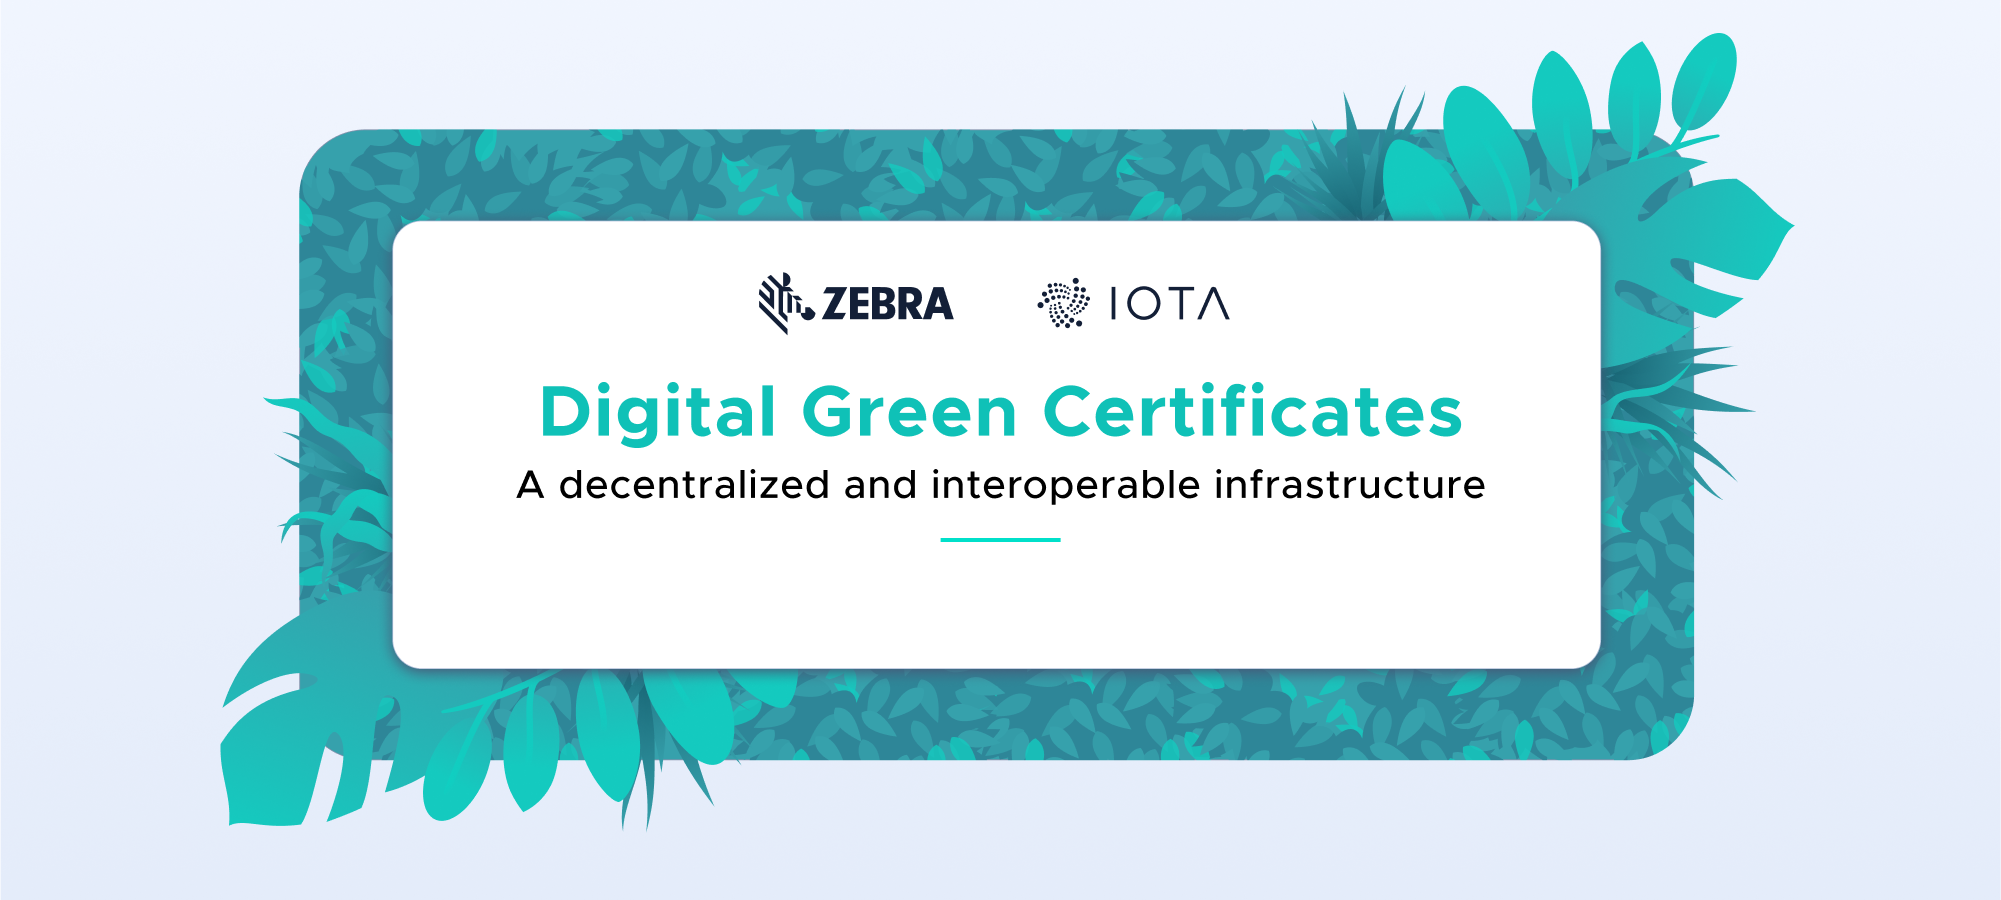 Digital Green Certificates: A decentralized and interoperable infrastructure